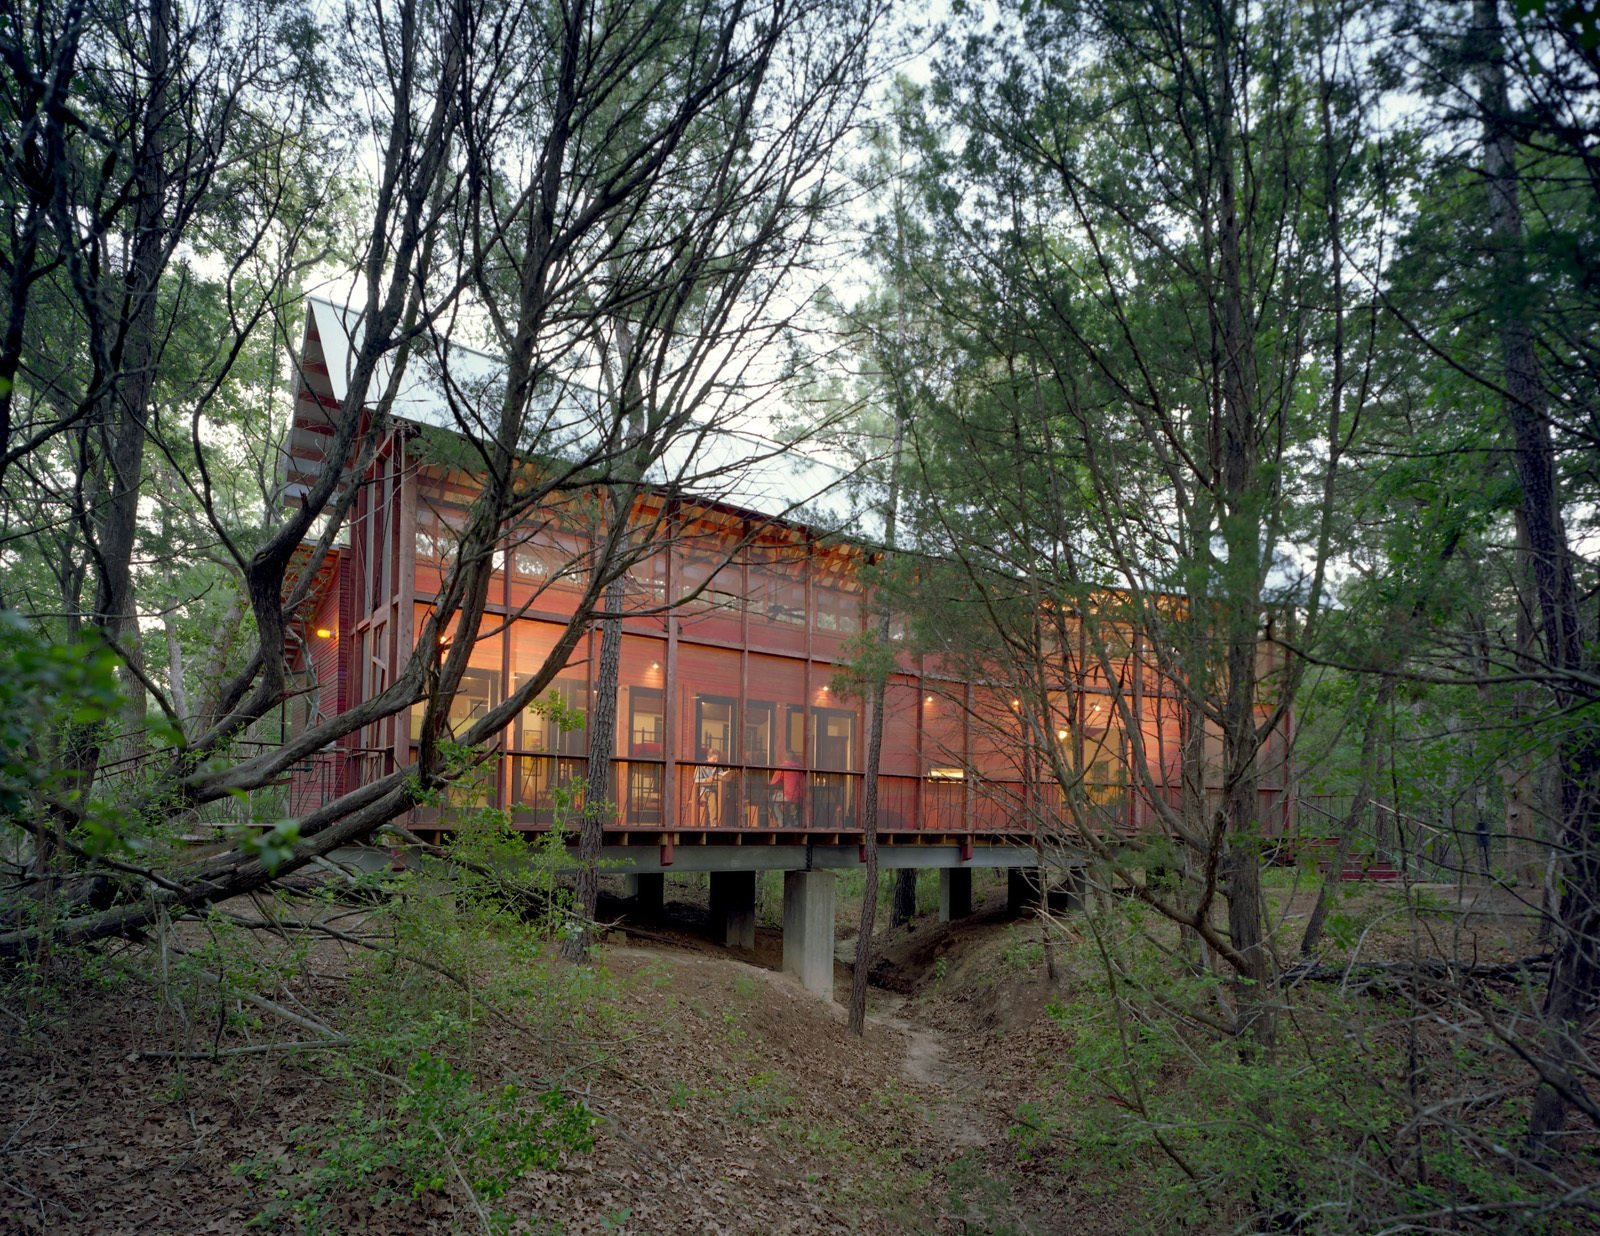 A screen porch runs the entire length of building, built over a dry creek bed on embedded concrete piers. The architect says he worked with the varying topography and native pines, turning the building 30 degrees at one point to accommodate the natural contours of the land.  Texas Bunkhouse by Erika Heet